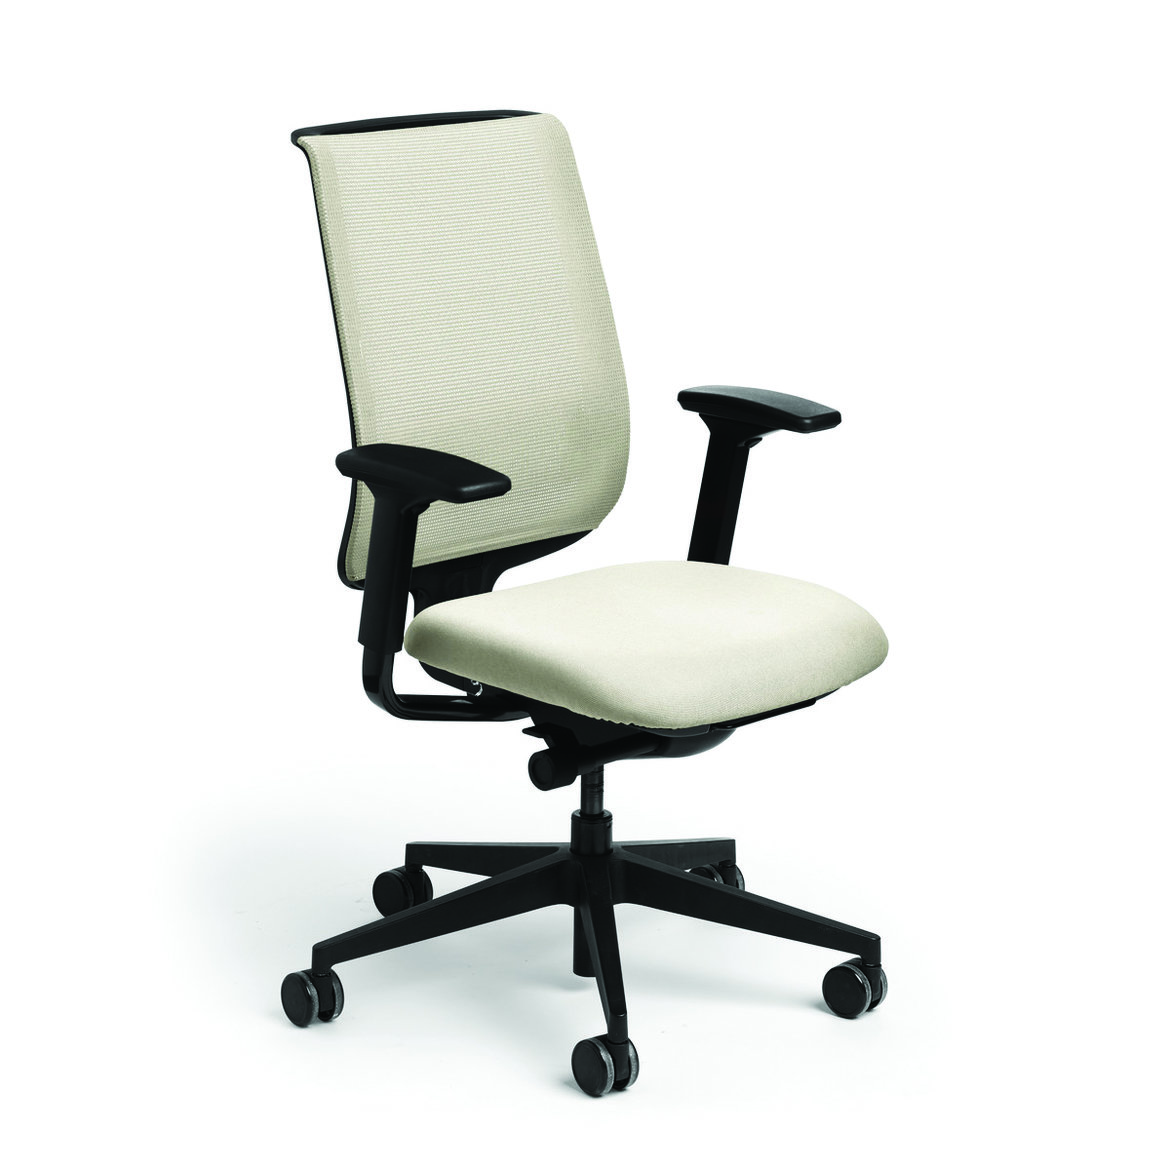 Poppin+reply+desk+chair